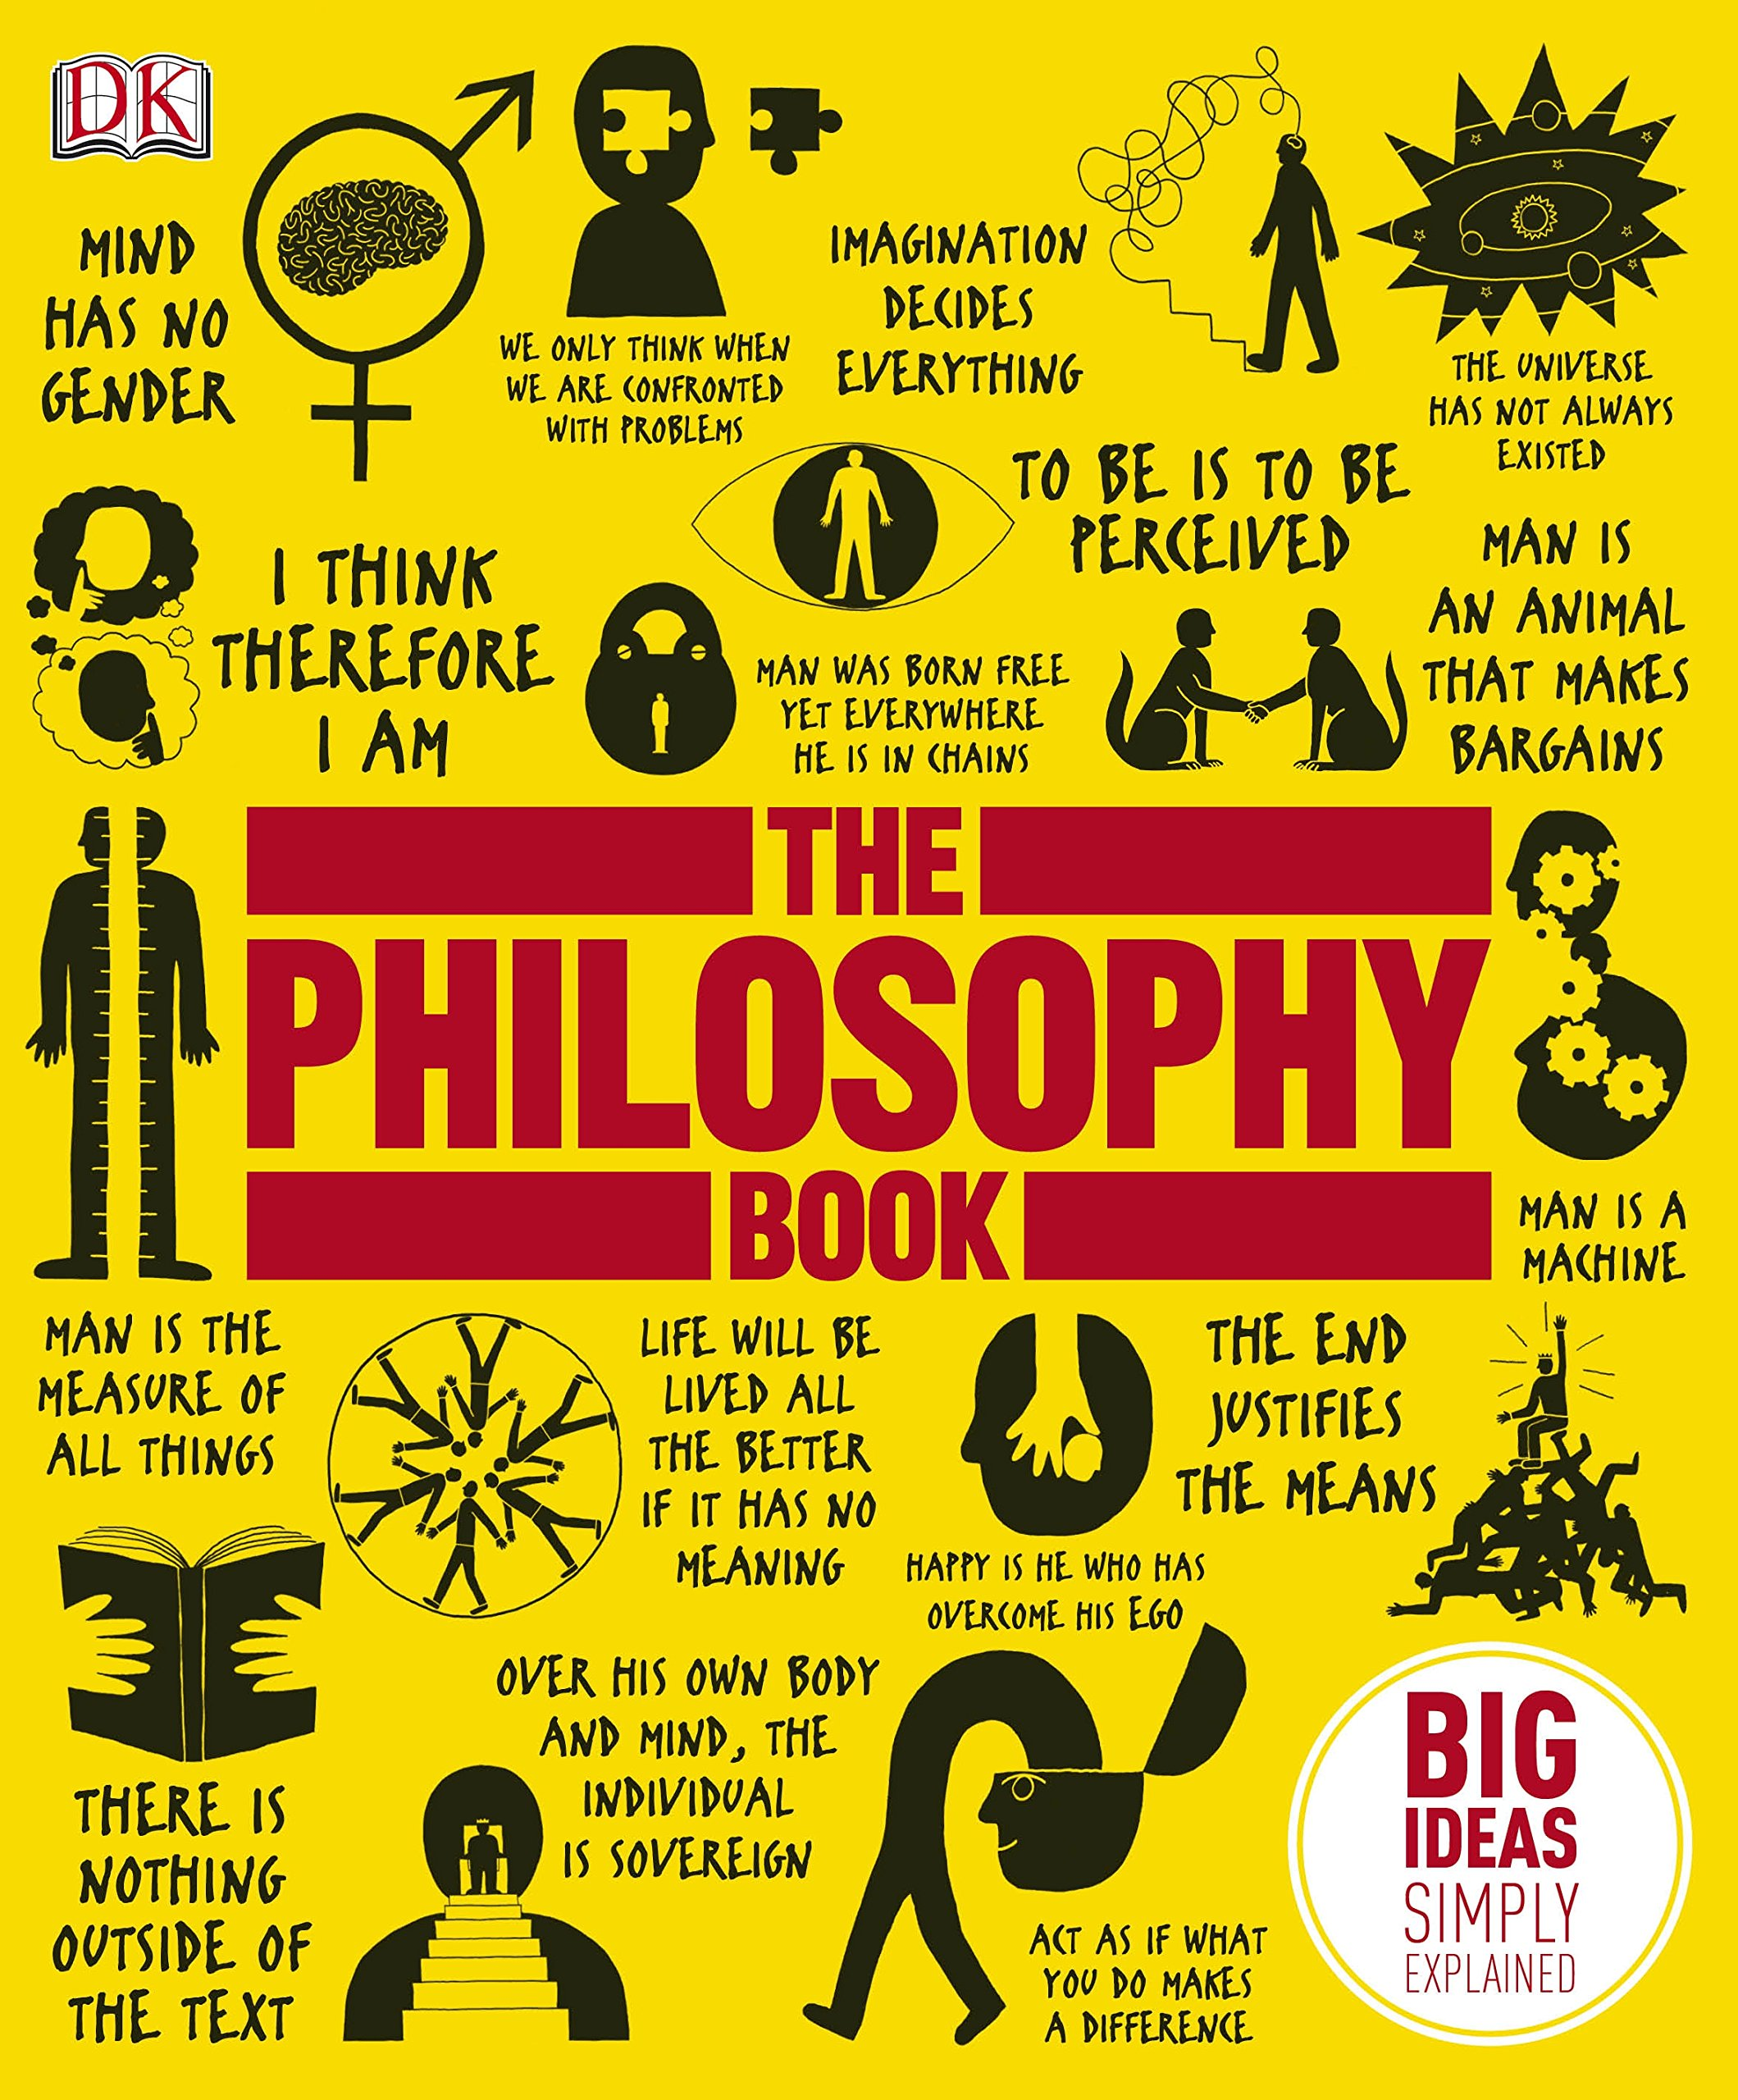 The Philosophy Book: Big Ideas (2011)